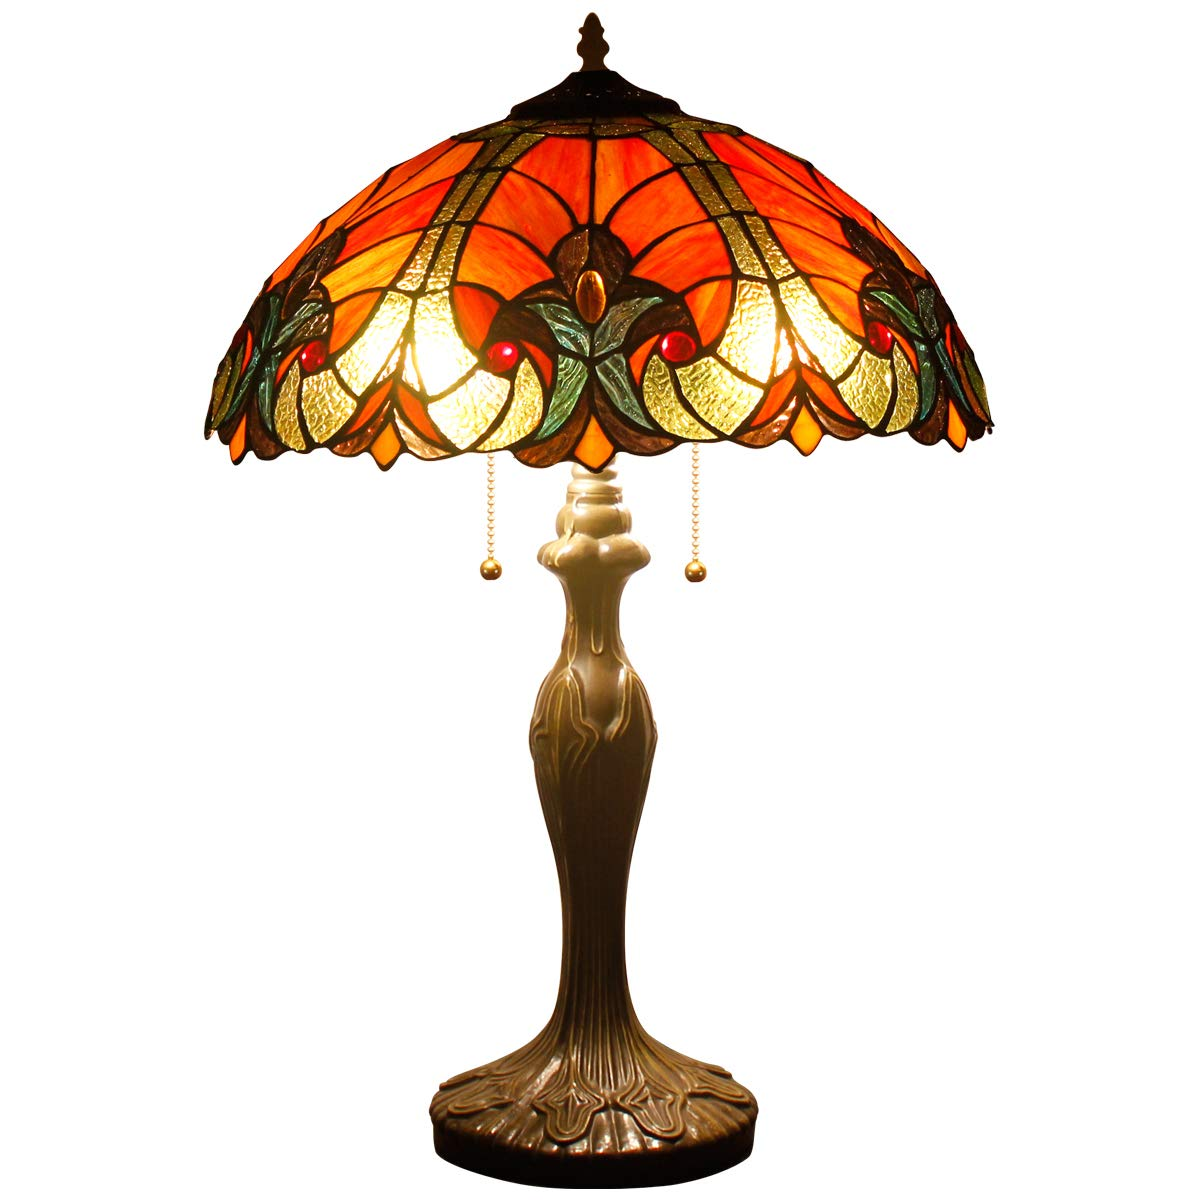 Tiffany Table Lamps Red Liaison Stained Glass Style Shade Zinc Base 2 Light 24 Inch Tall for Living Room Bedroom Coffee Table Reading Desk Beside Reading Set S160R WERFACTORY